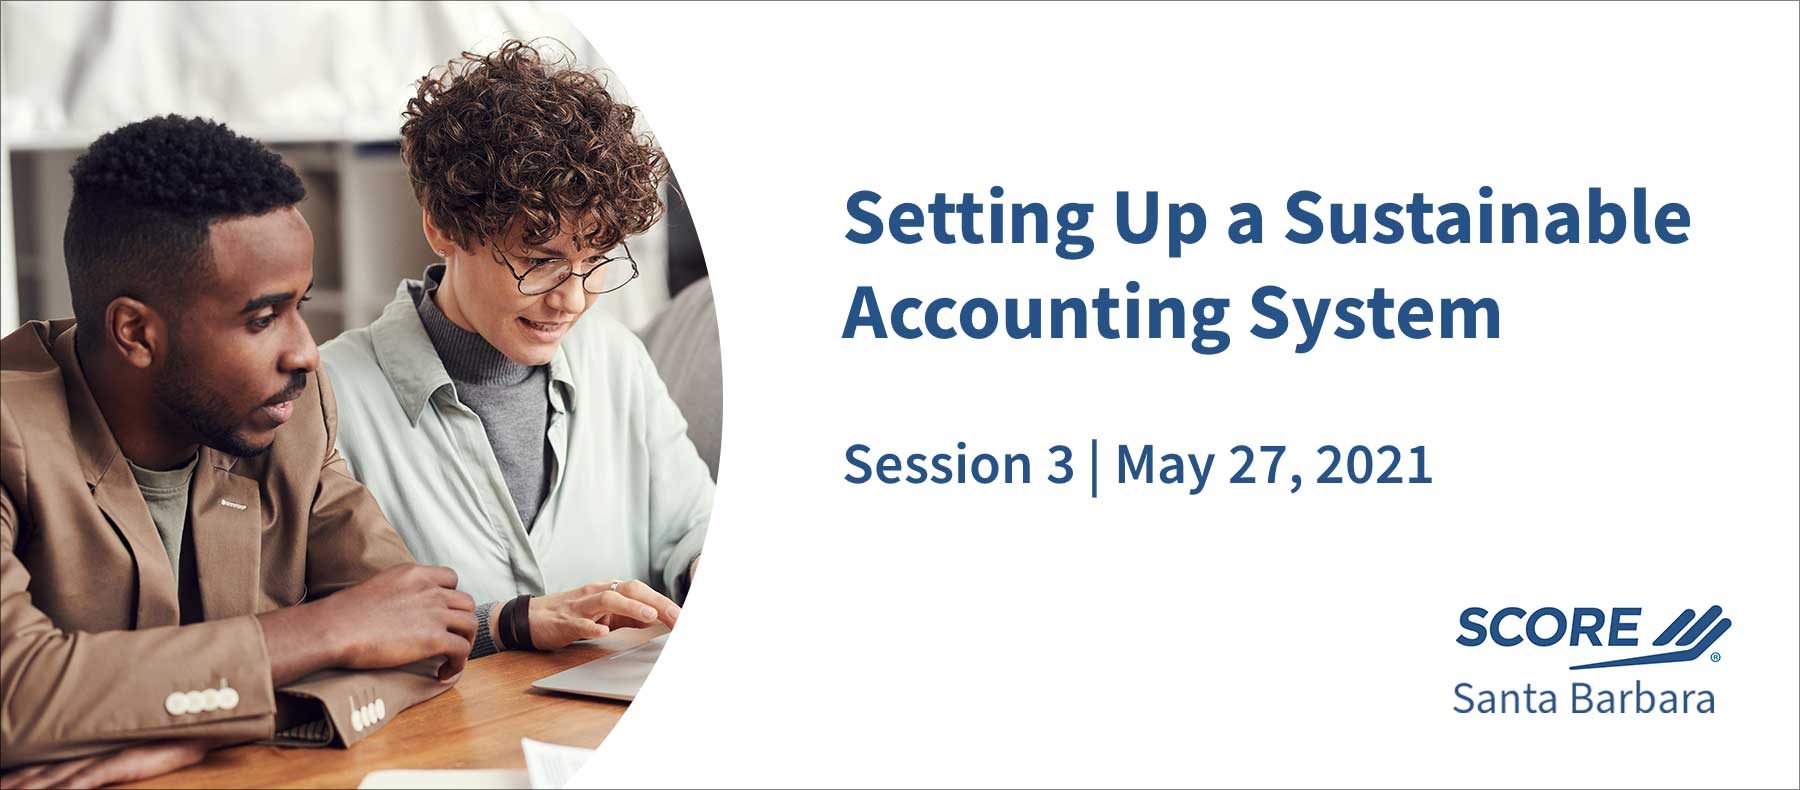 SCORE setting up accounting system session 3